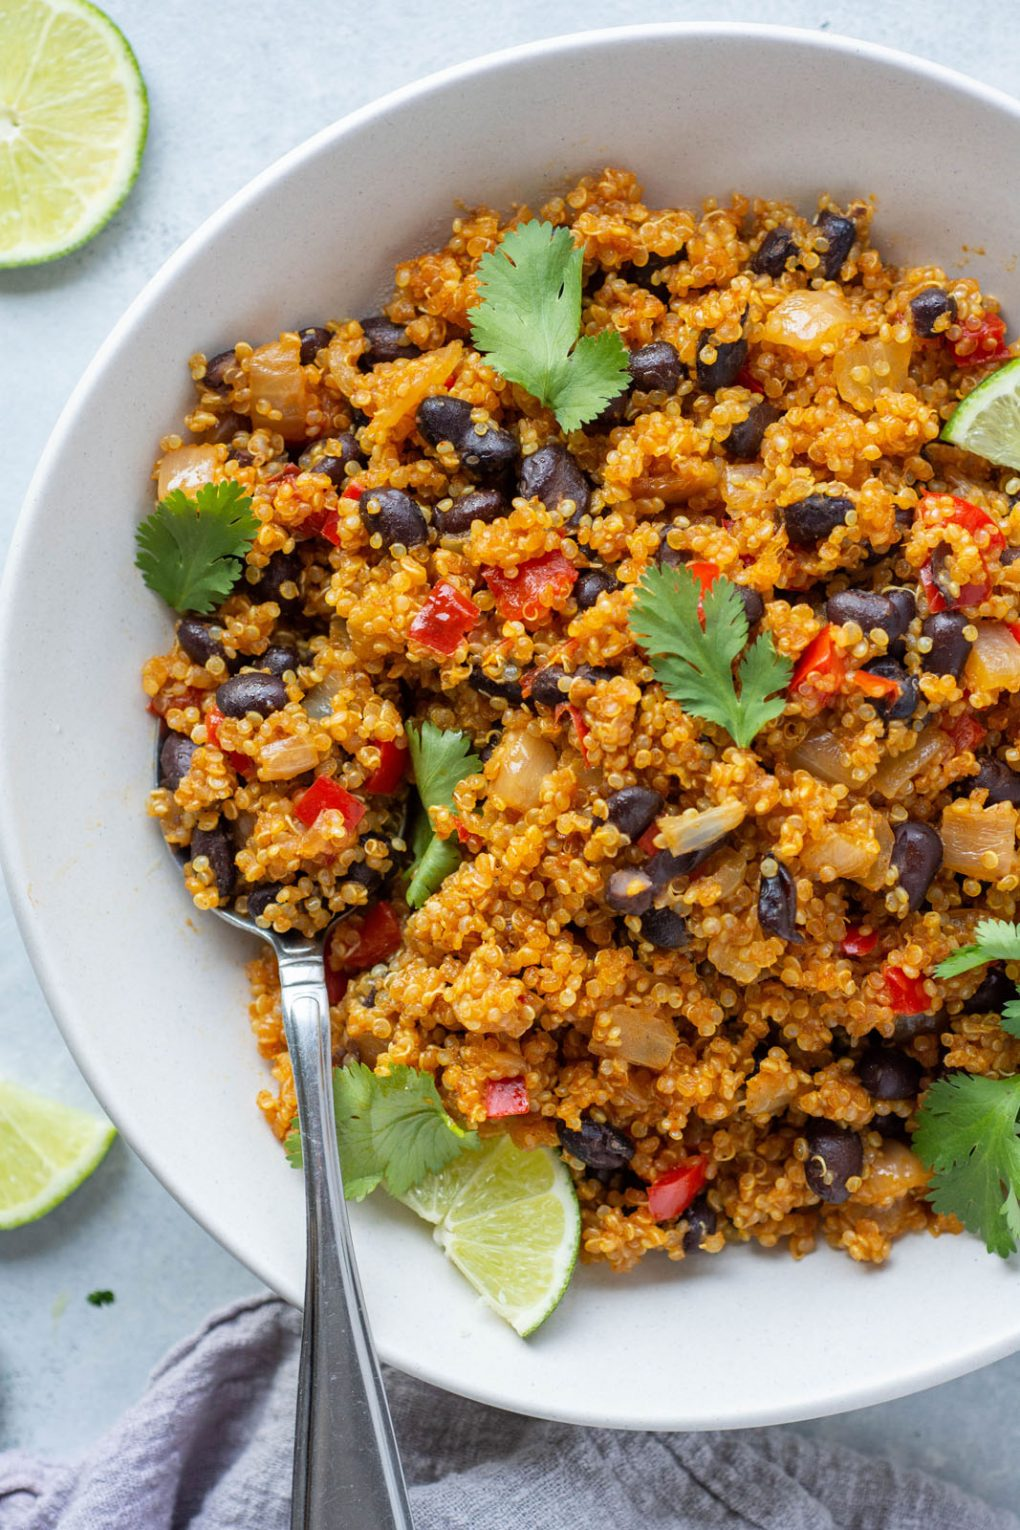 Overhead shot of southwest quinoa with black beans, diced red pepper, fresh cilantro, and garnished with lime wedges. In a white bowl on a light colored background.